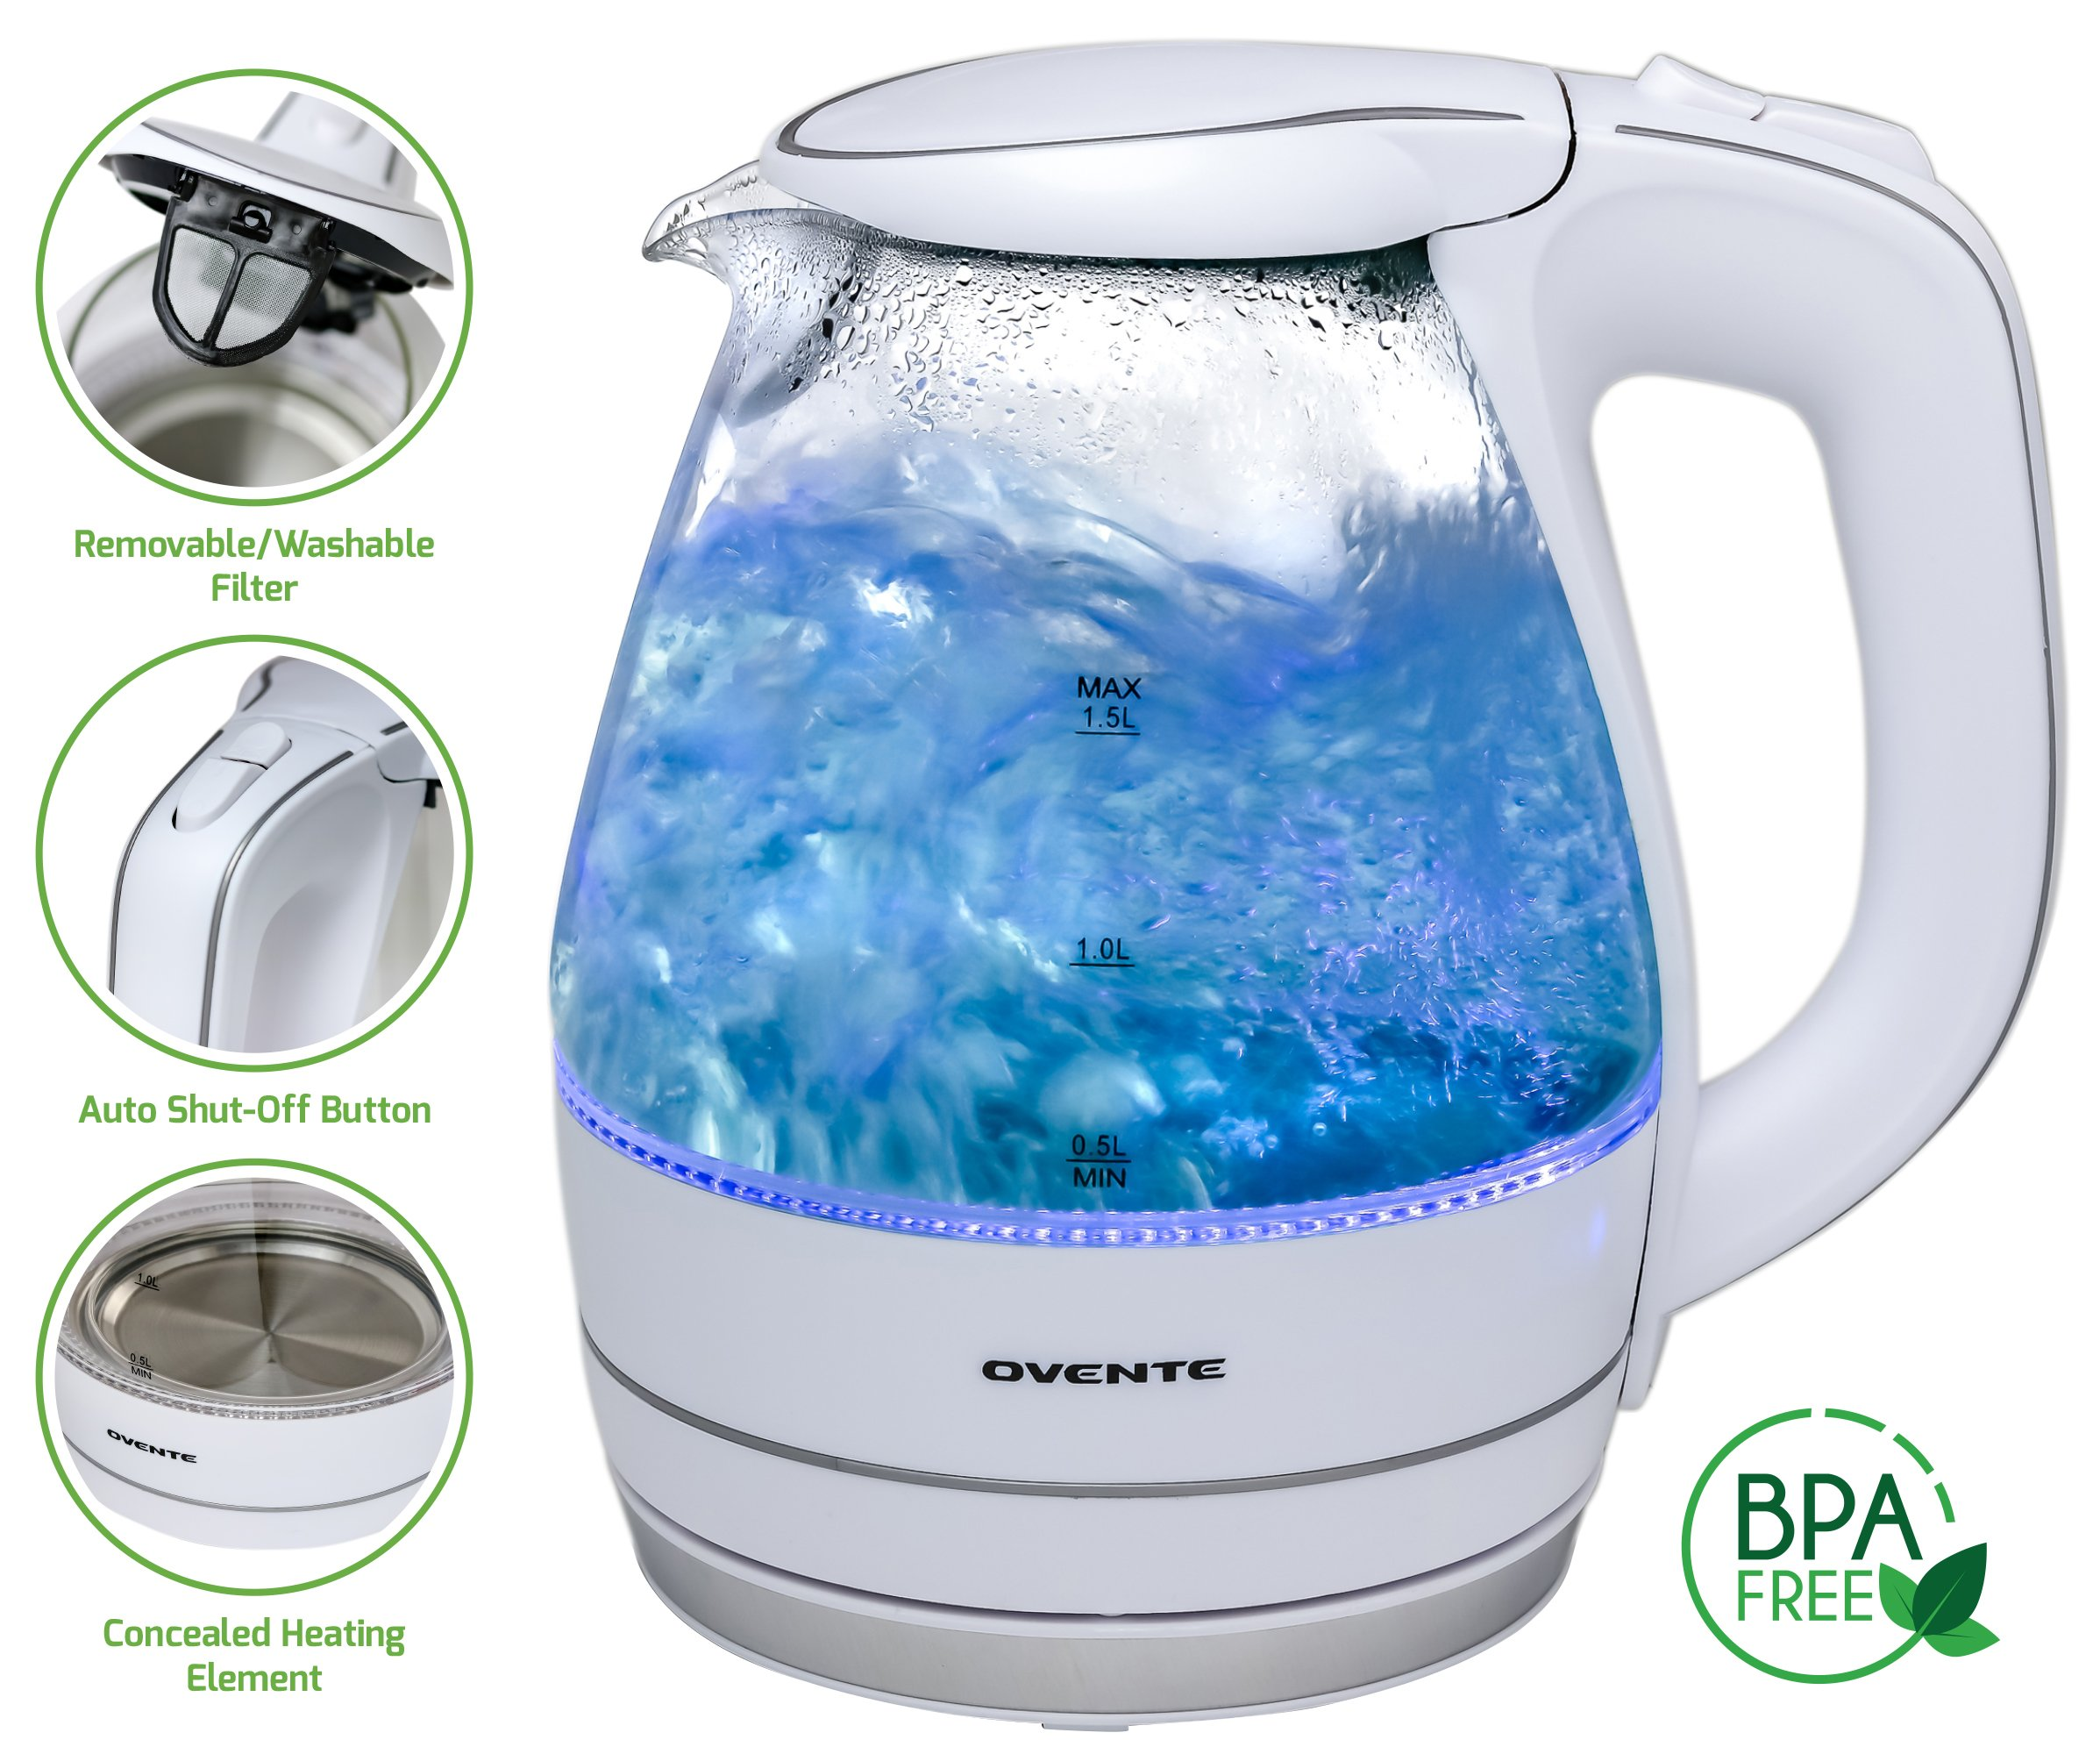 Ovente 1.5L BPA-Free Glass Electric Kettle, Fast Heating with Auto Shut-Off and Boil-Dry Protection, Cordless, LED Light Indicator, White (KG83W)